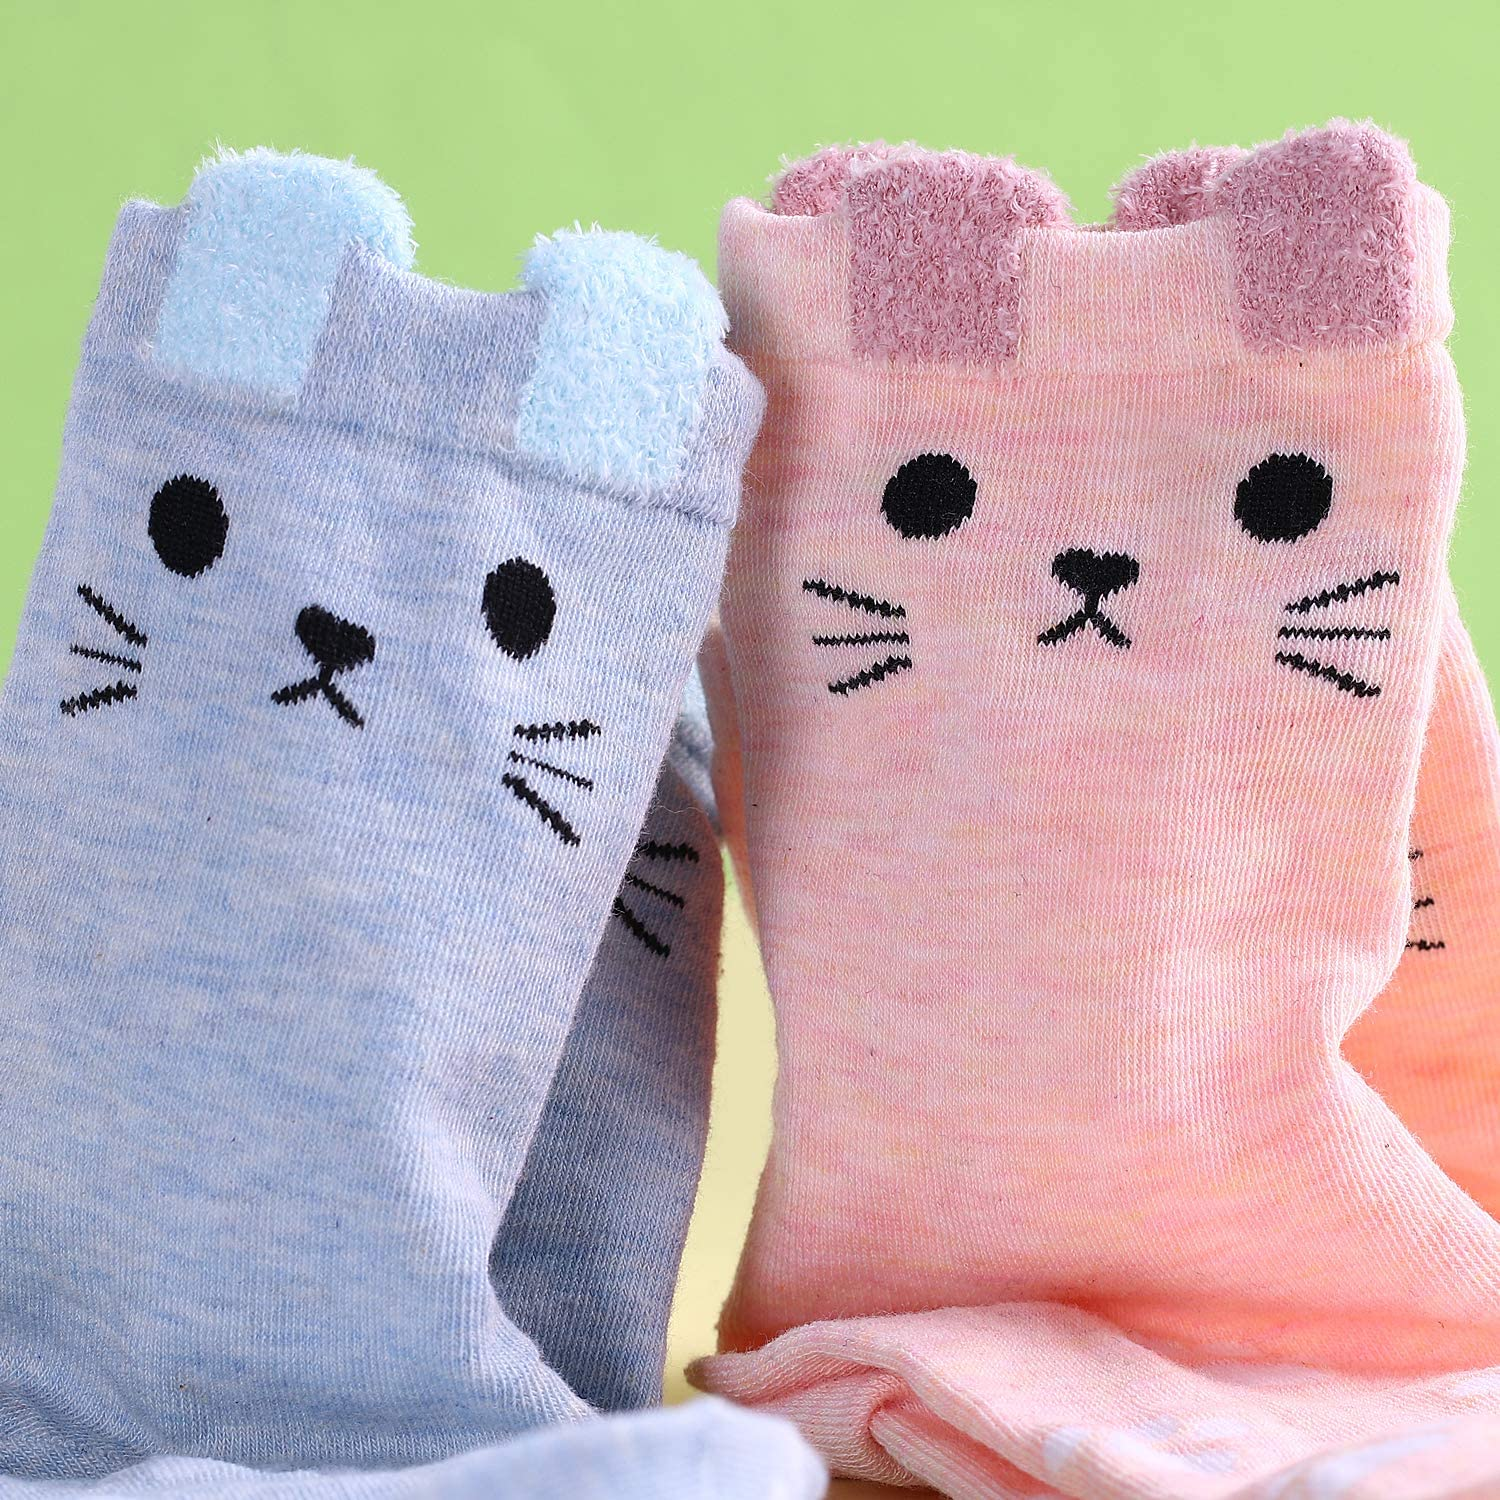 Jeasona Socks for Women Pack Cotton Funny Cute Animal Gifts for Women